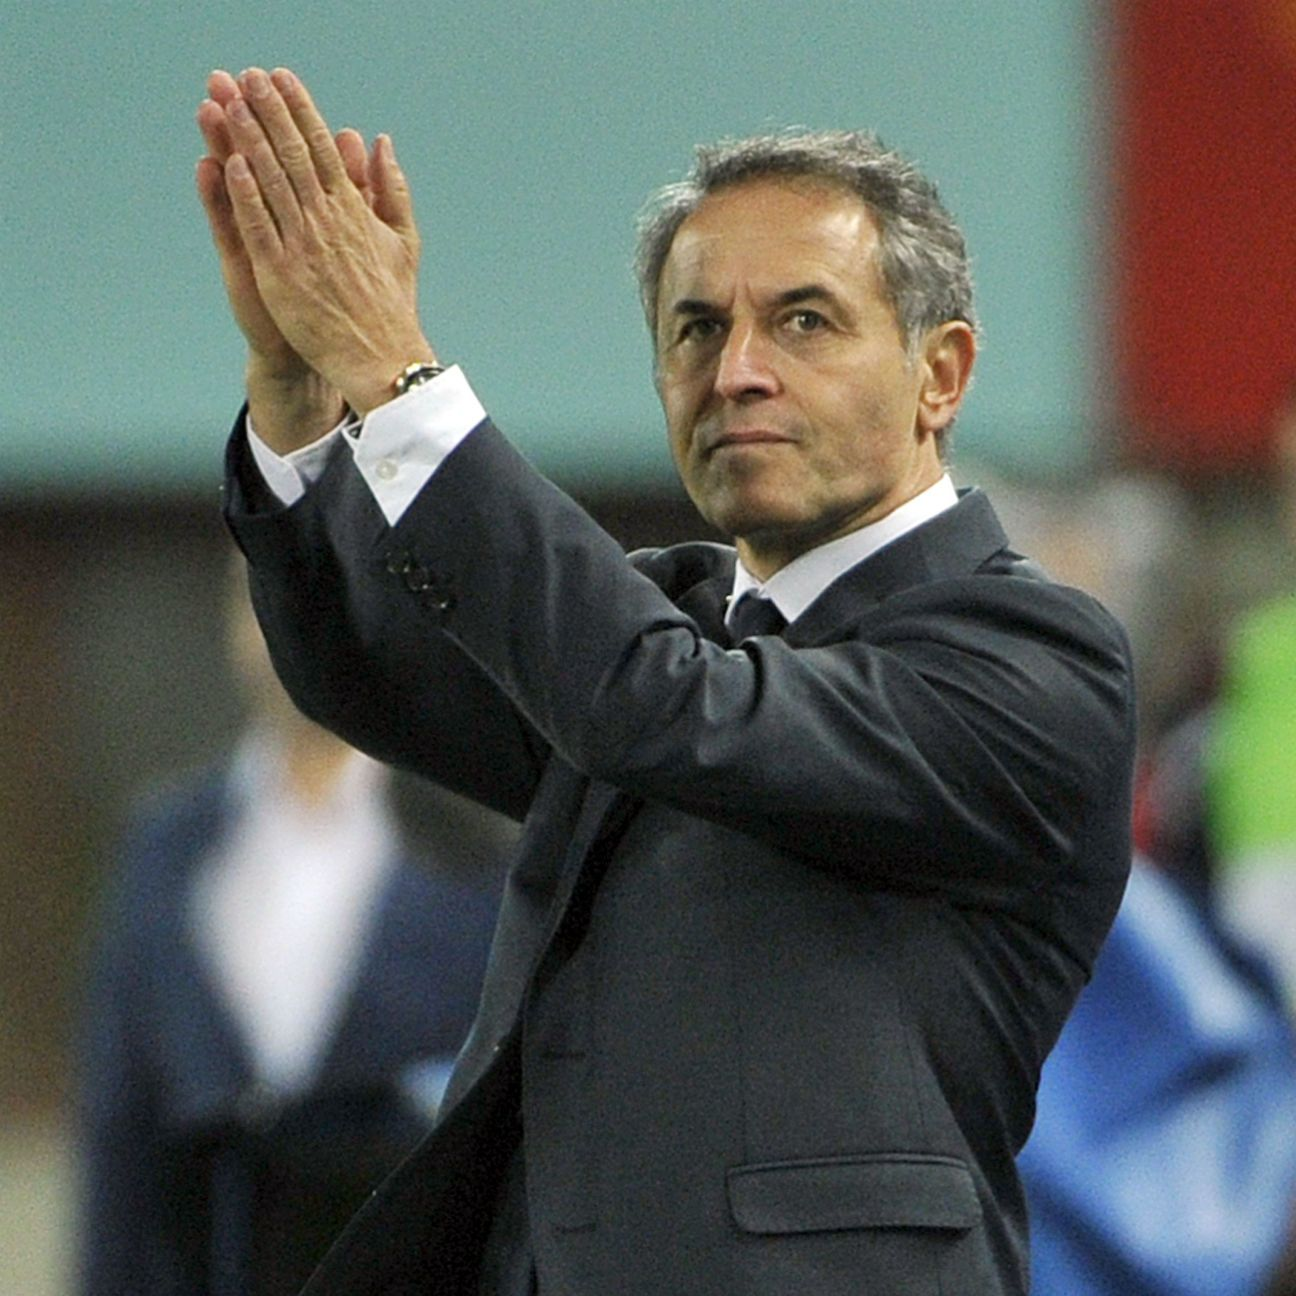 Marcel Koller has Austria leading the pack in UEFA Euro 2016 qualifying Group G.